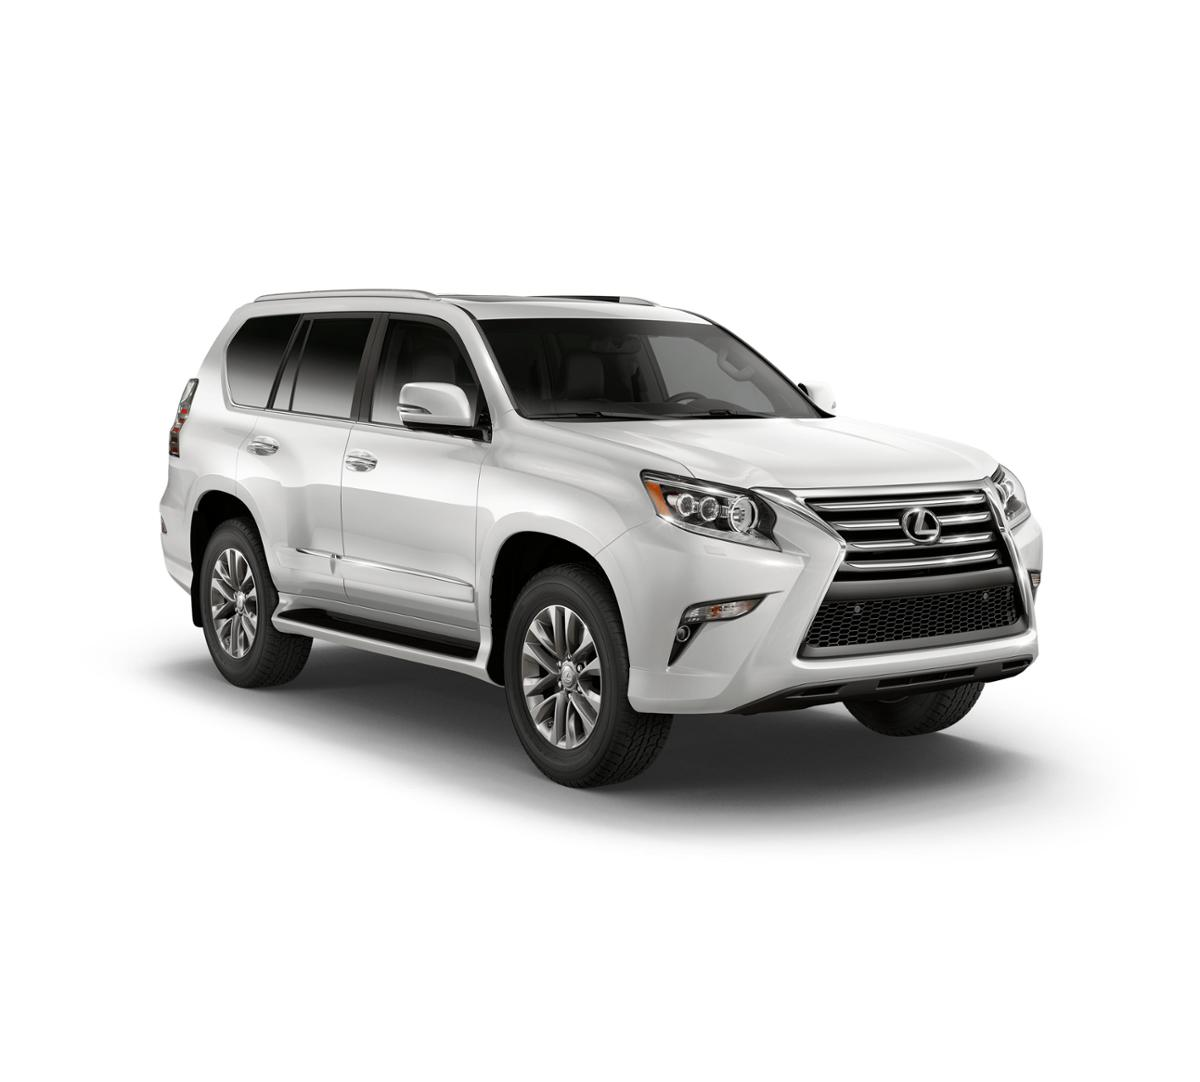 2018 Lexus GX 460 Vehicle Photo in Danvers, MA 01923